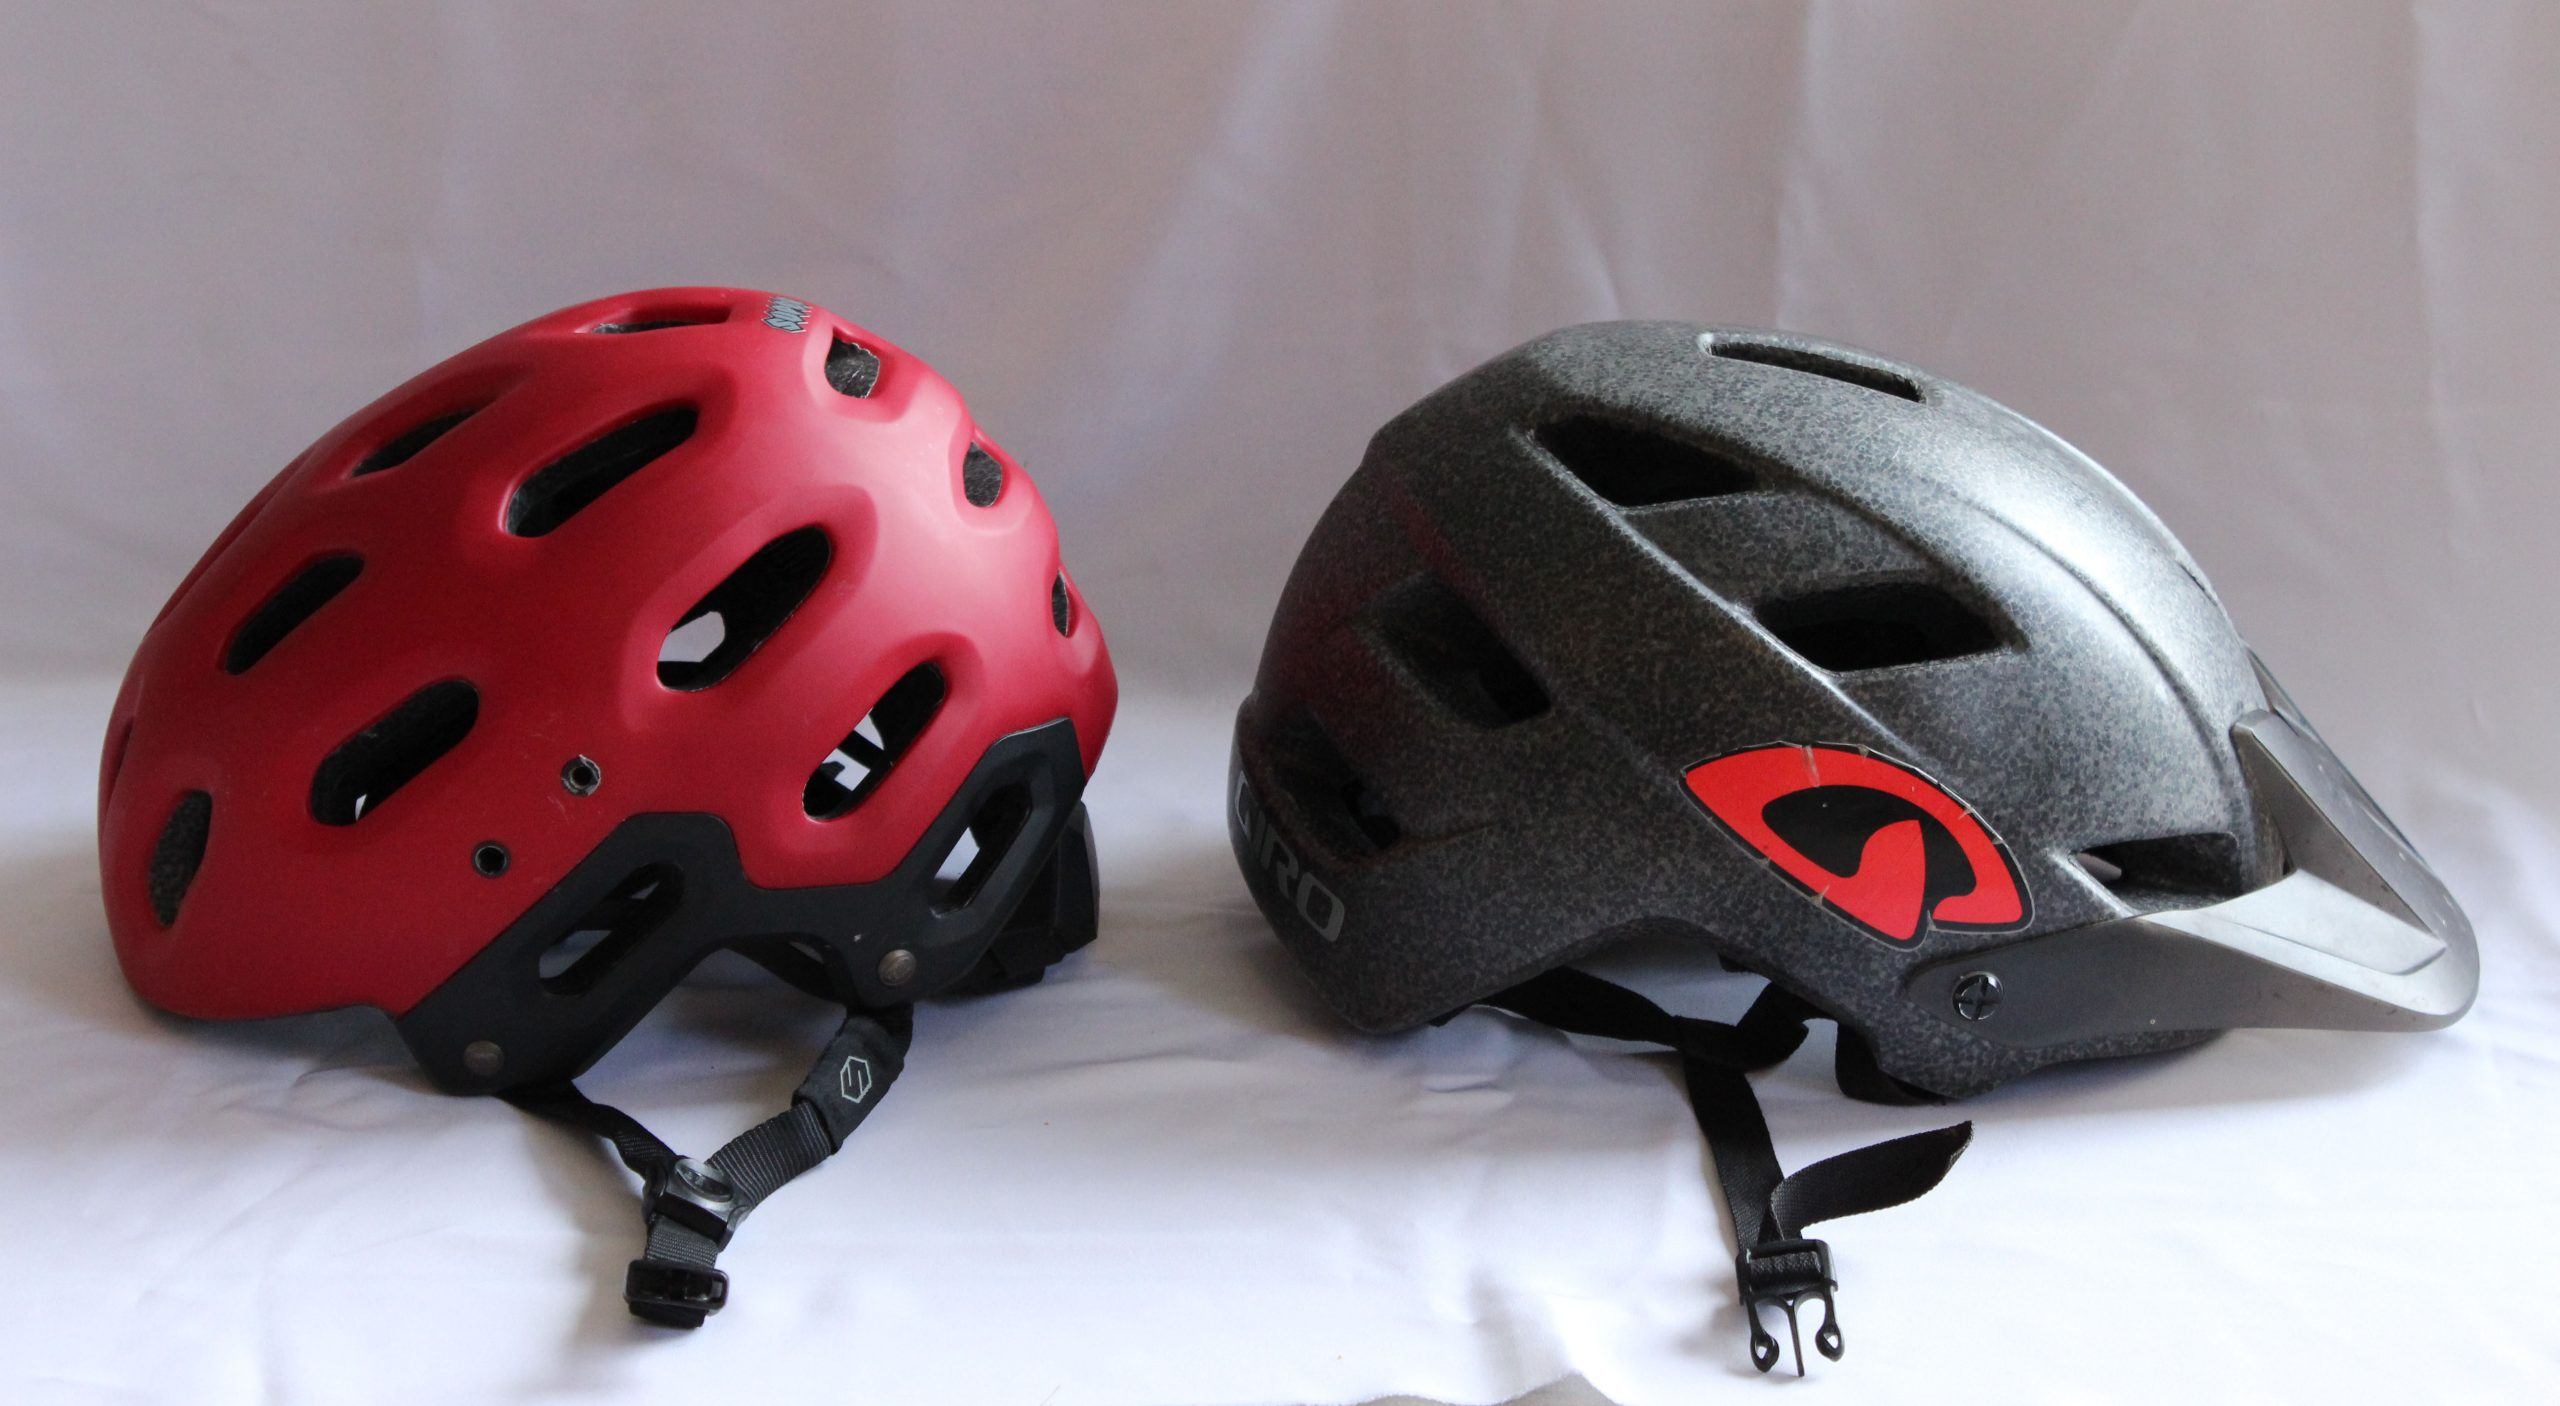 3 Top Tips for Helmet Care